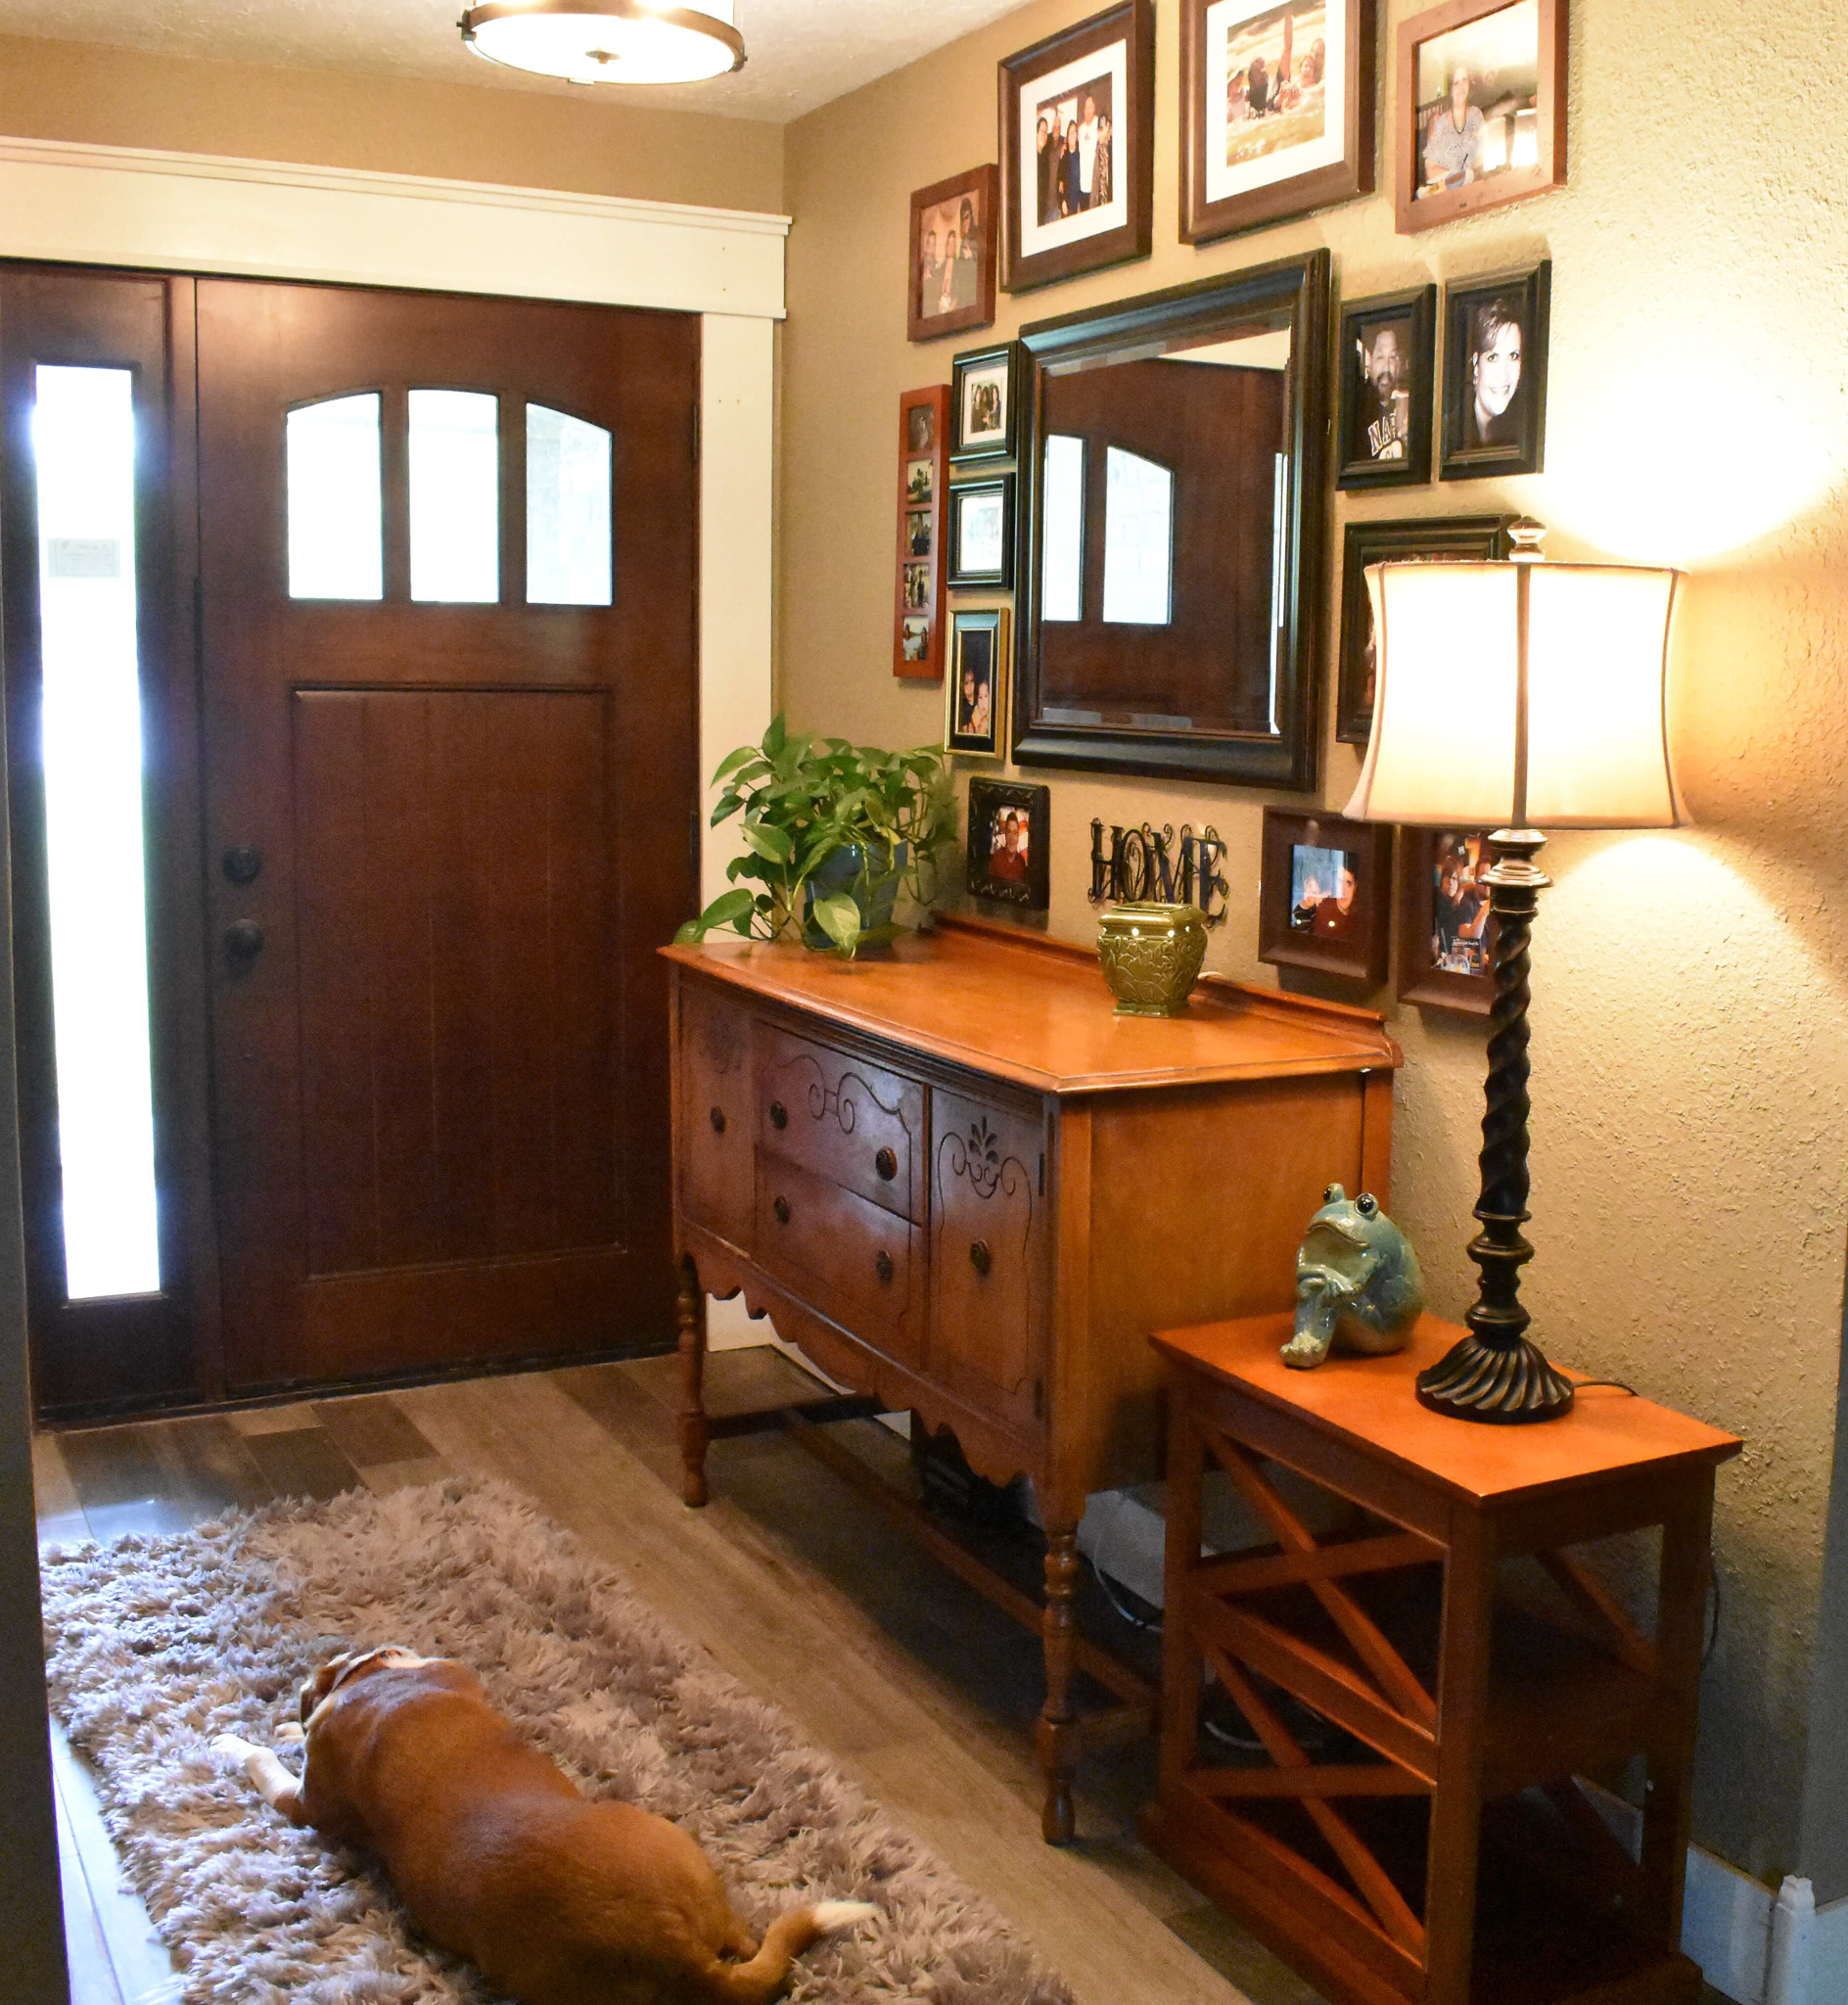 Makeover Your Entryway for $0